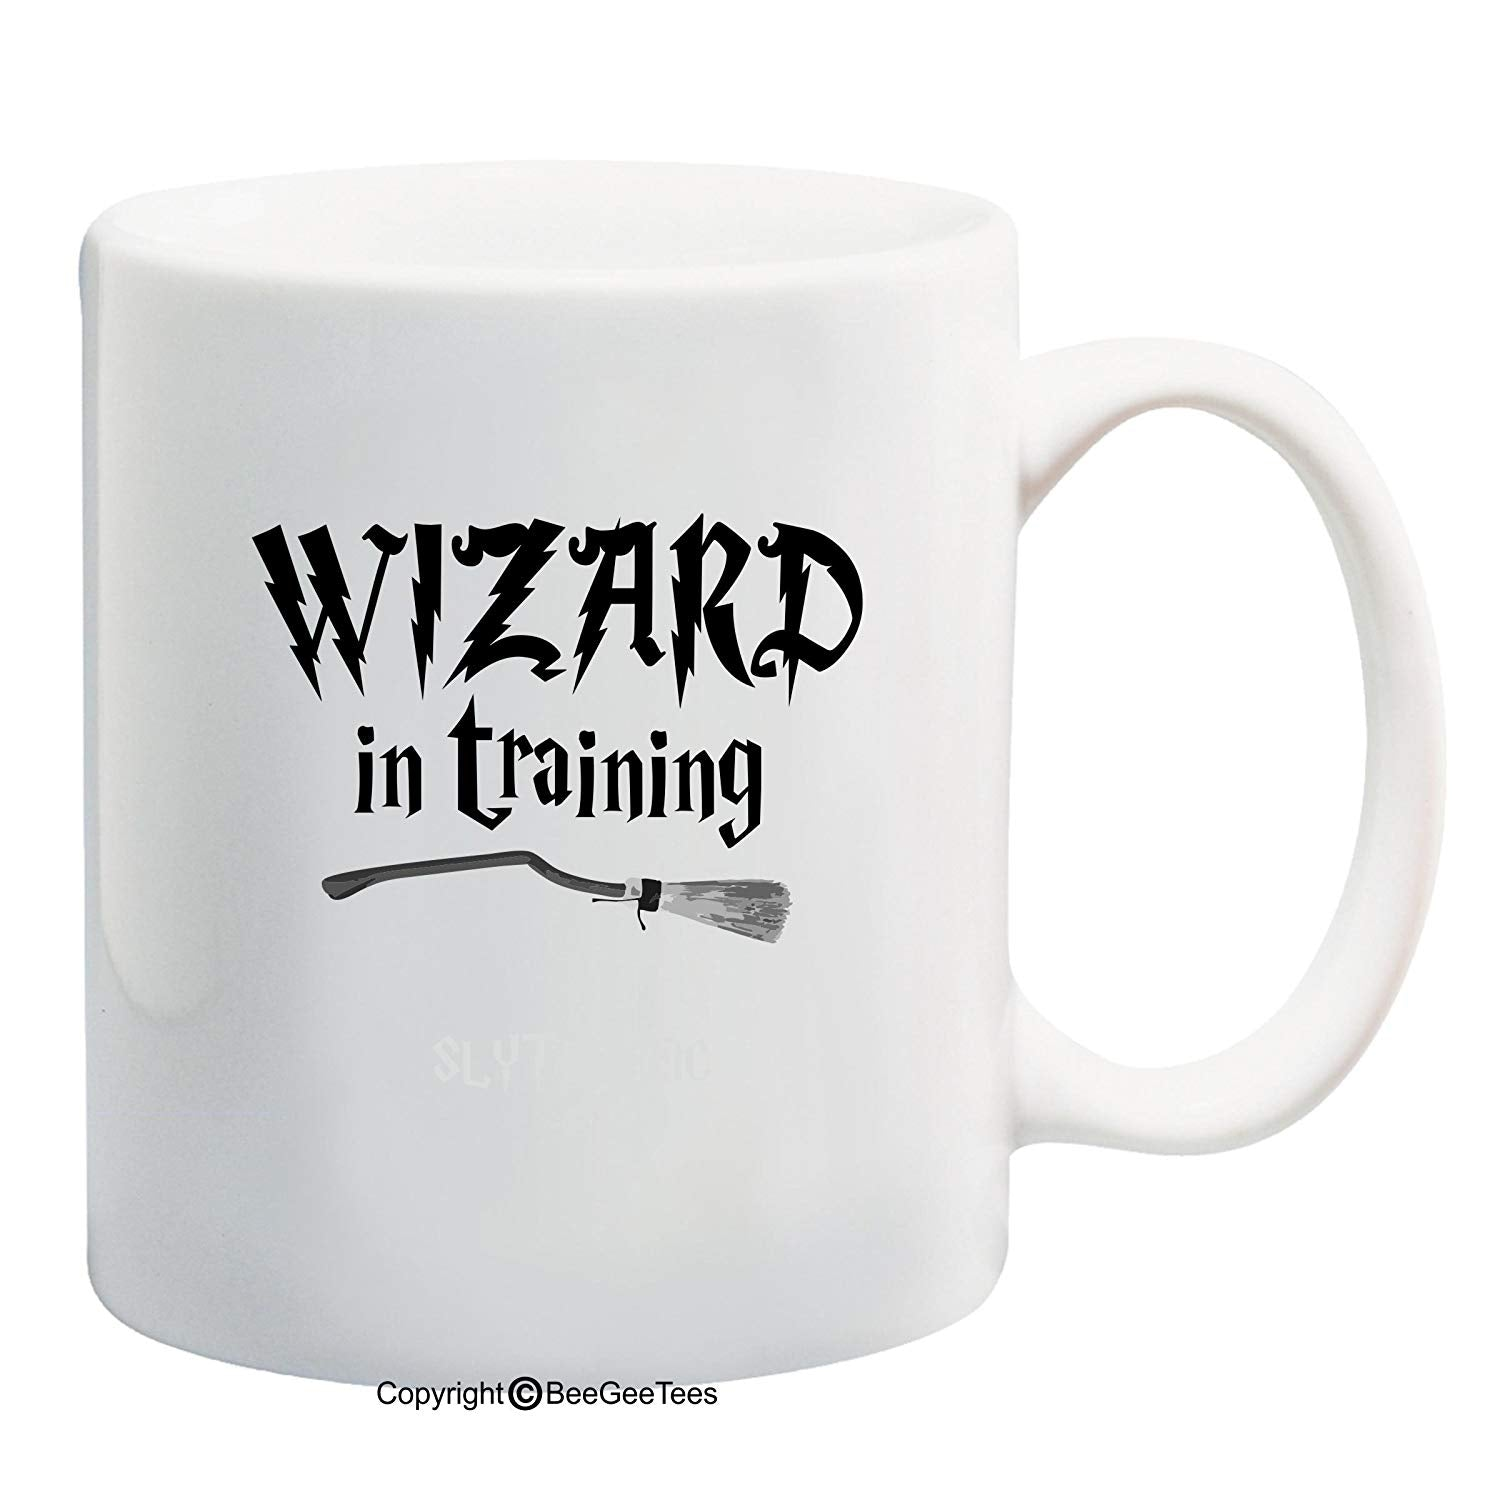 Wizard In Training Funny Harry Potter Inspired Coffee Mug or Tea Cup Wizards by BeeGeeTees